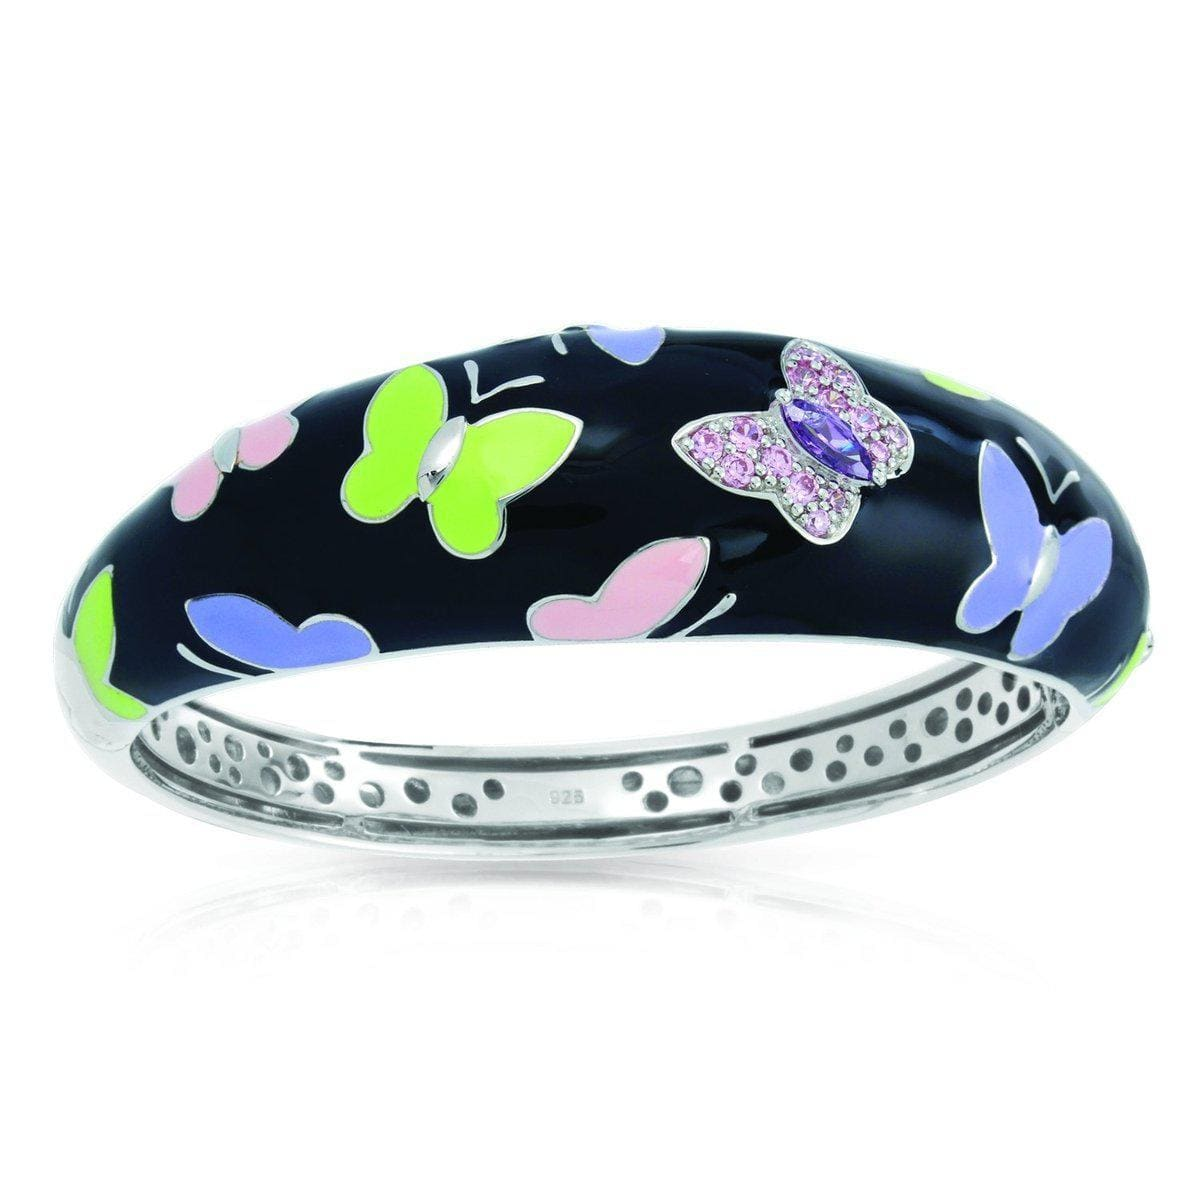 Papillon Black Bangle-Belle Etoile-Renee Taylor Gallery